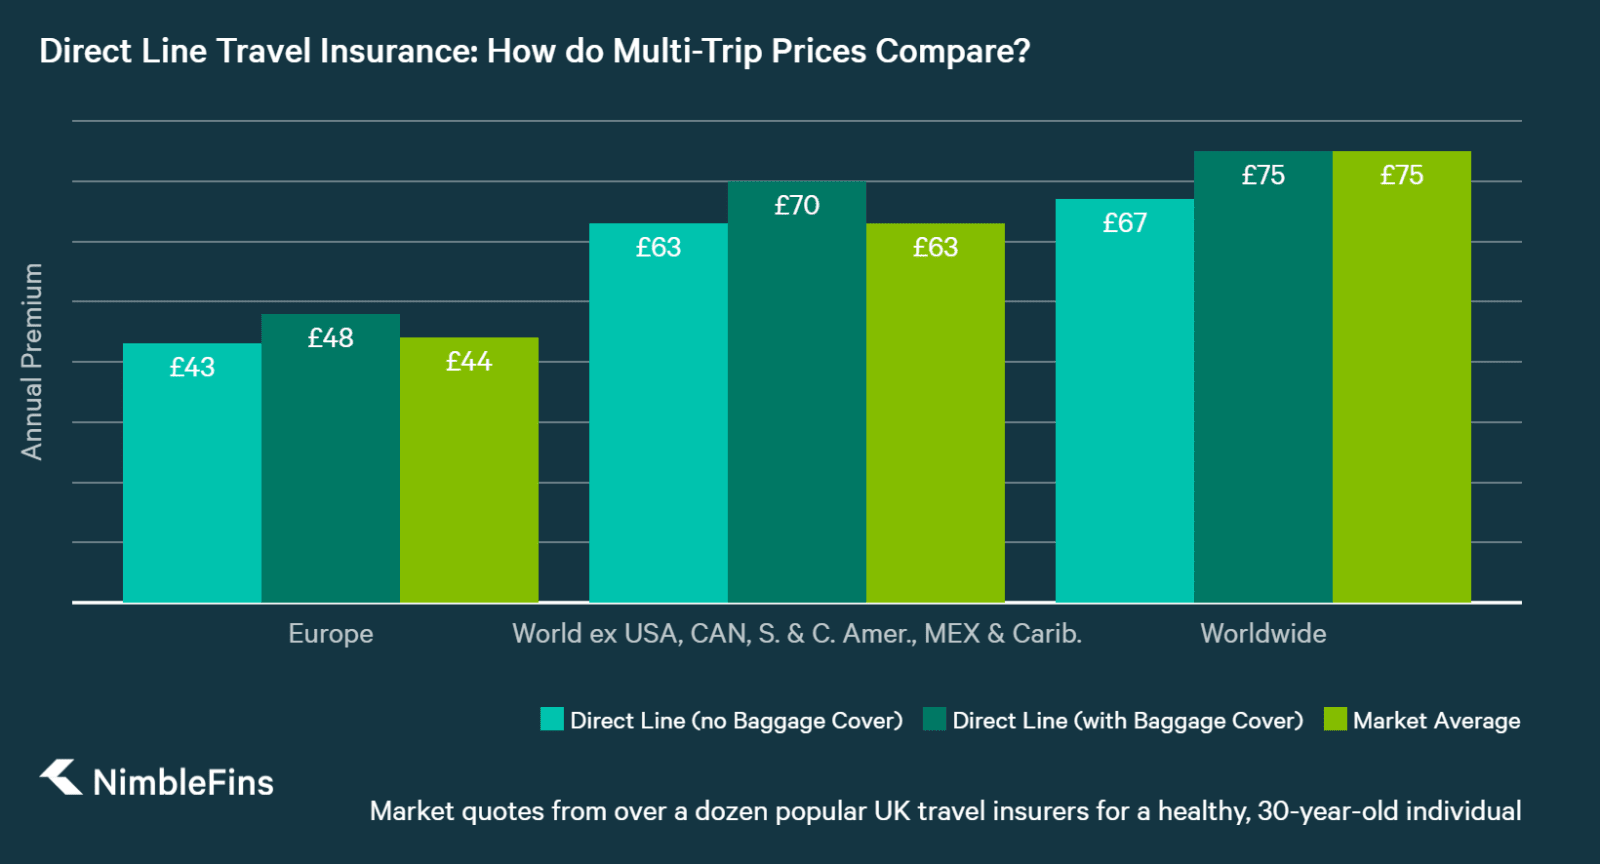 chart showing Direct Line multi-trip travel insurance prices and value compared to the market